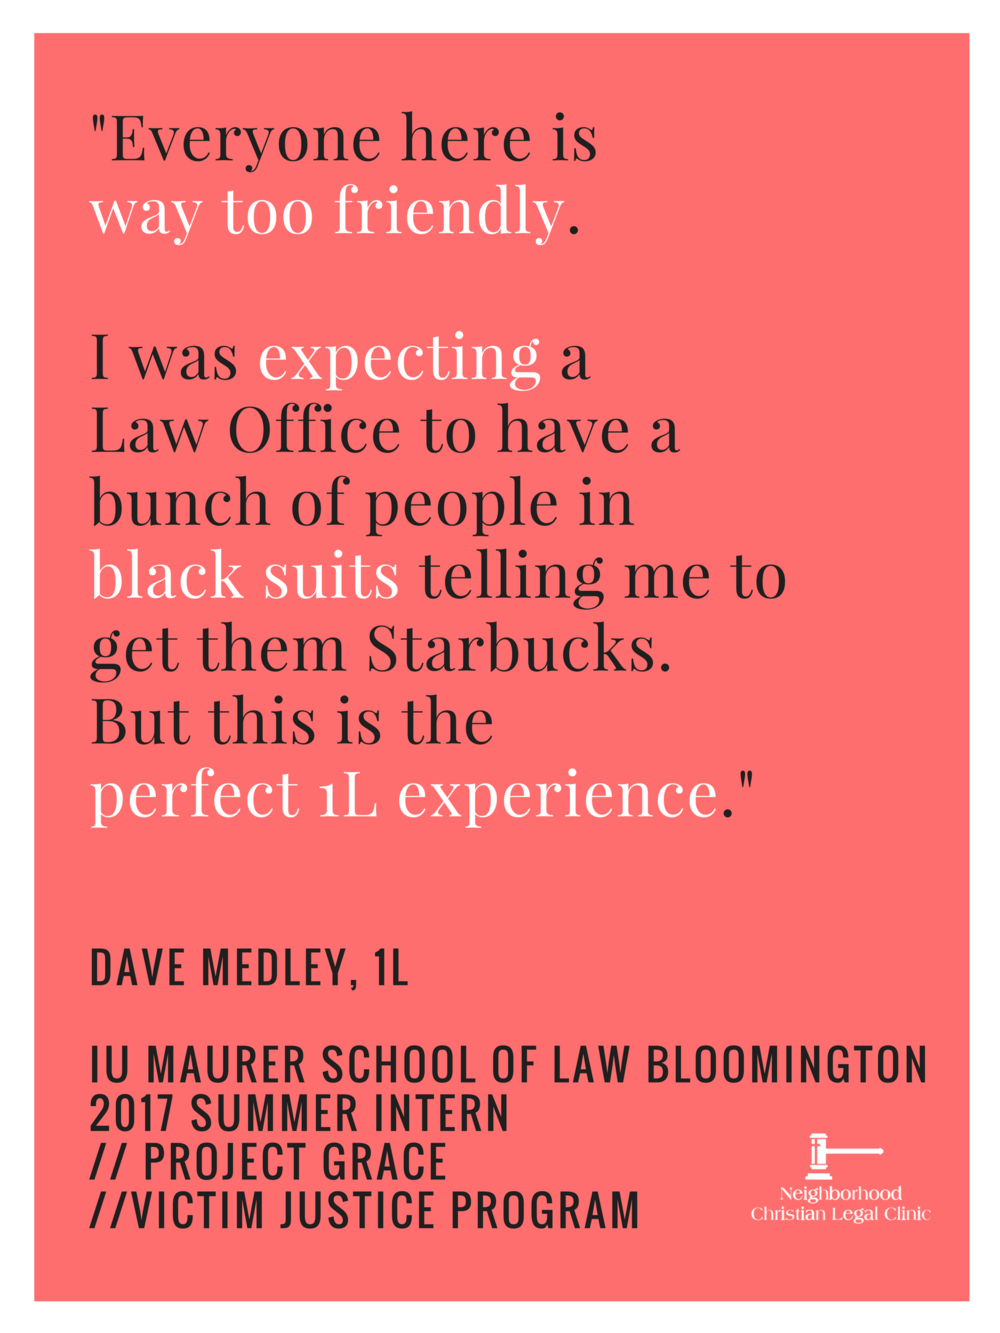 2017 Summer Intern Quote - David Medley - Canva.png